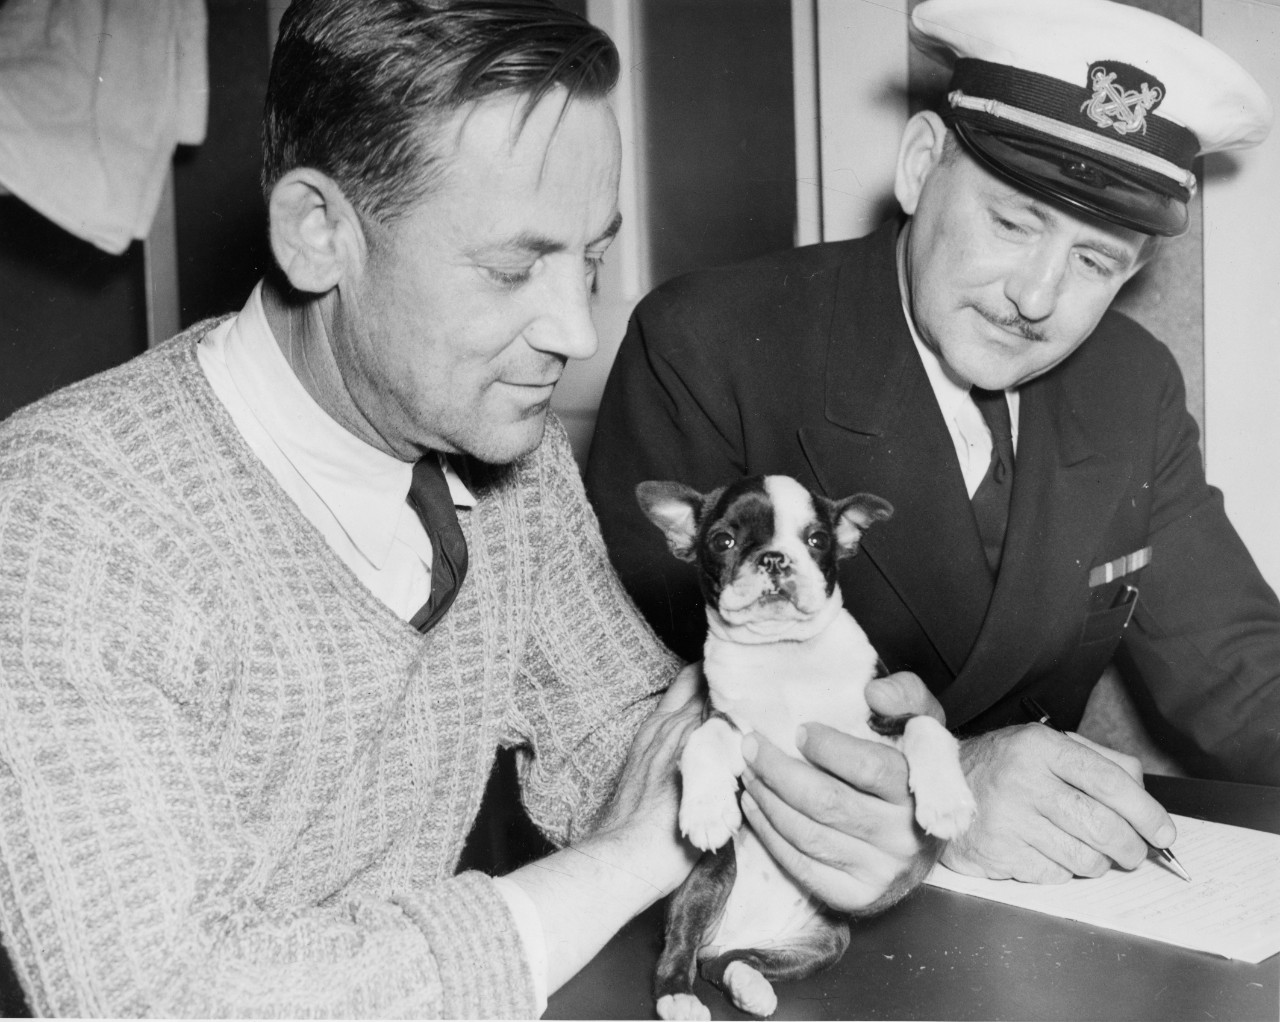 "Capt. George Fisk, Empire Thrush's master, holds ""Elizabeth,"" his 5-week old Boston Bulldog, during the debriefing of his ship's crew. (U.S. Navy Photograph 80-CF-105-4A-1, National Archives and Records Administration, Still Pictures Branch, College Park, Md.)"